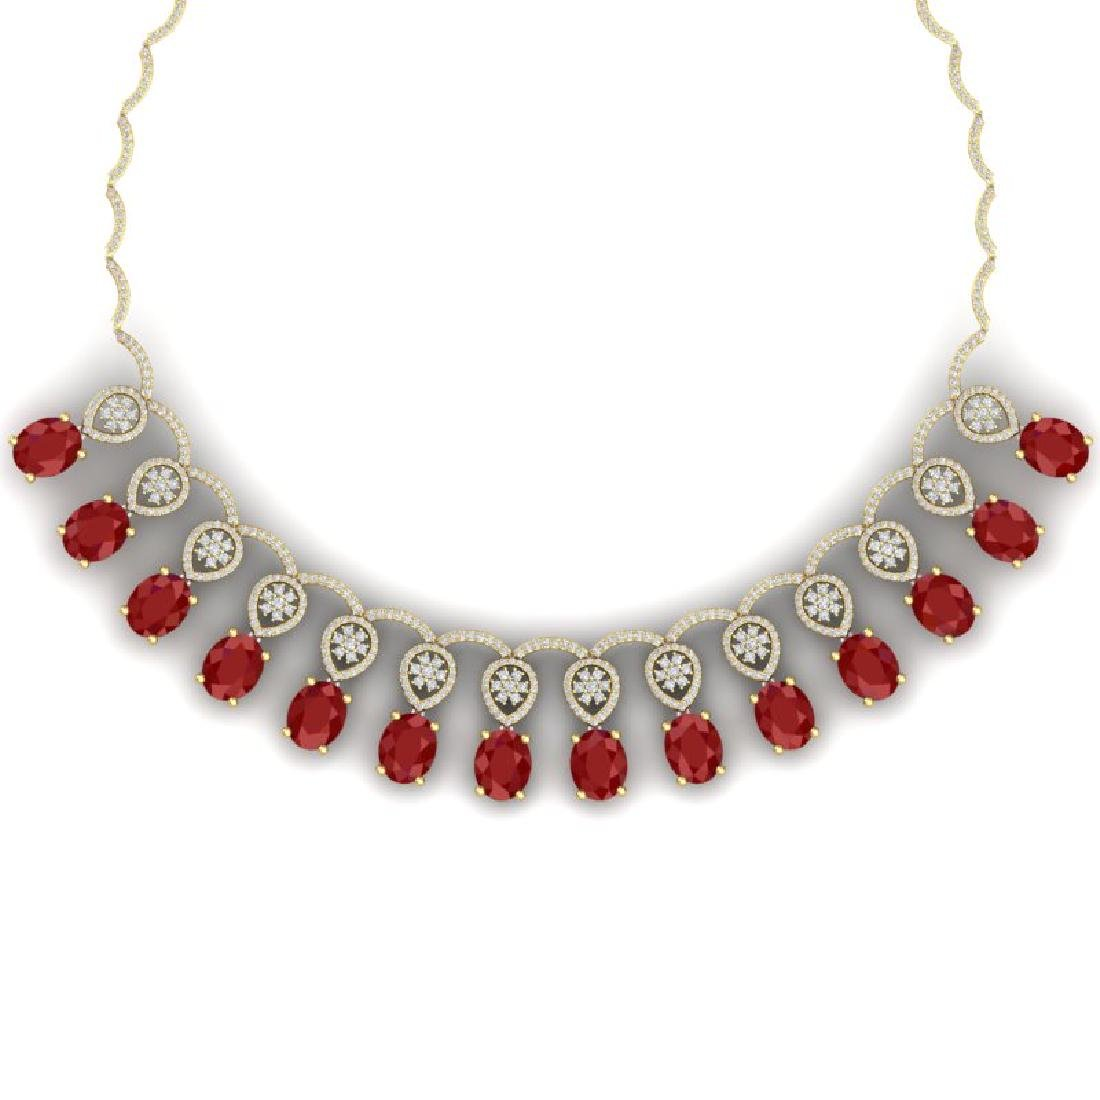 54.05 CTW Royalty Ruby & VS Diamond Necklace 18K Yellow